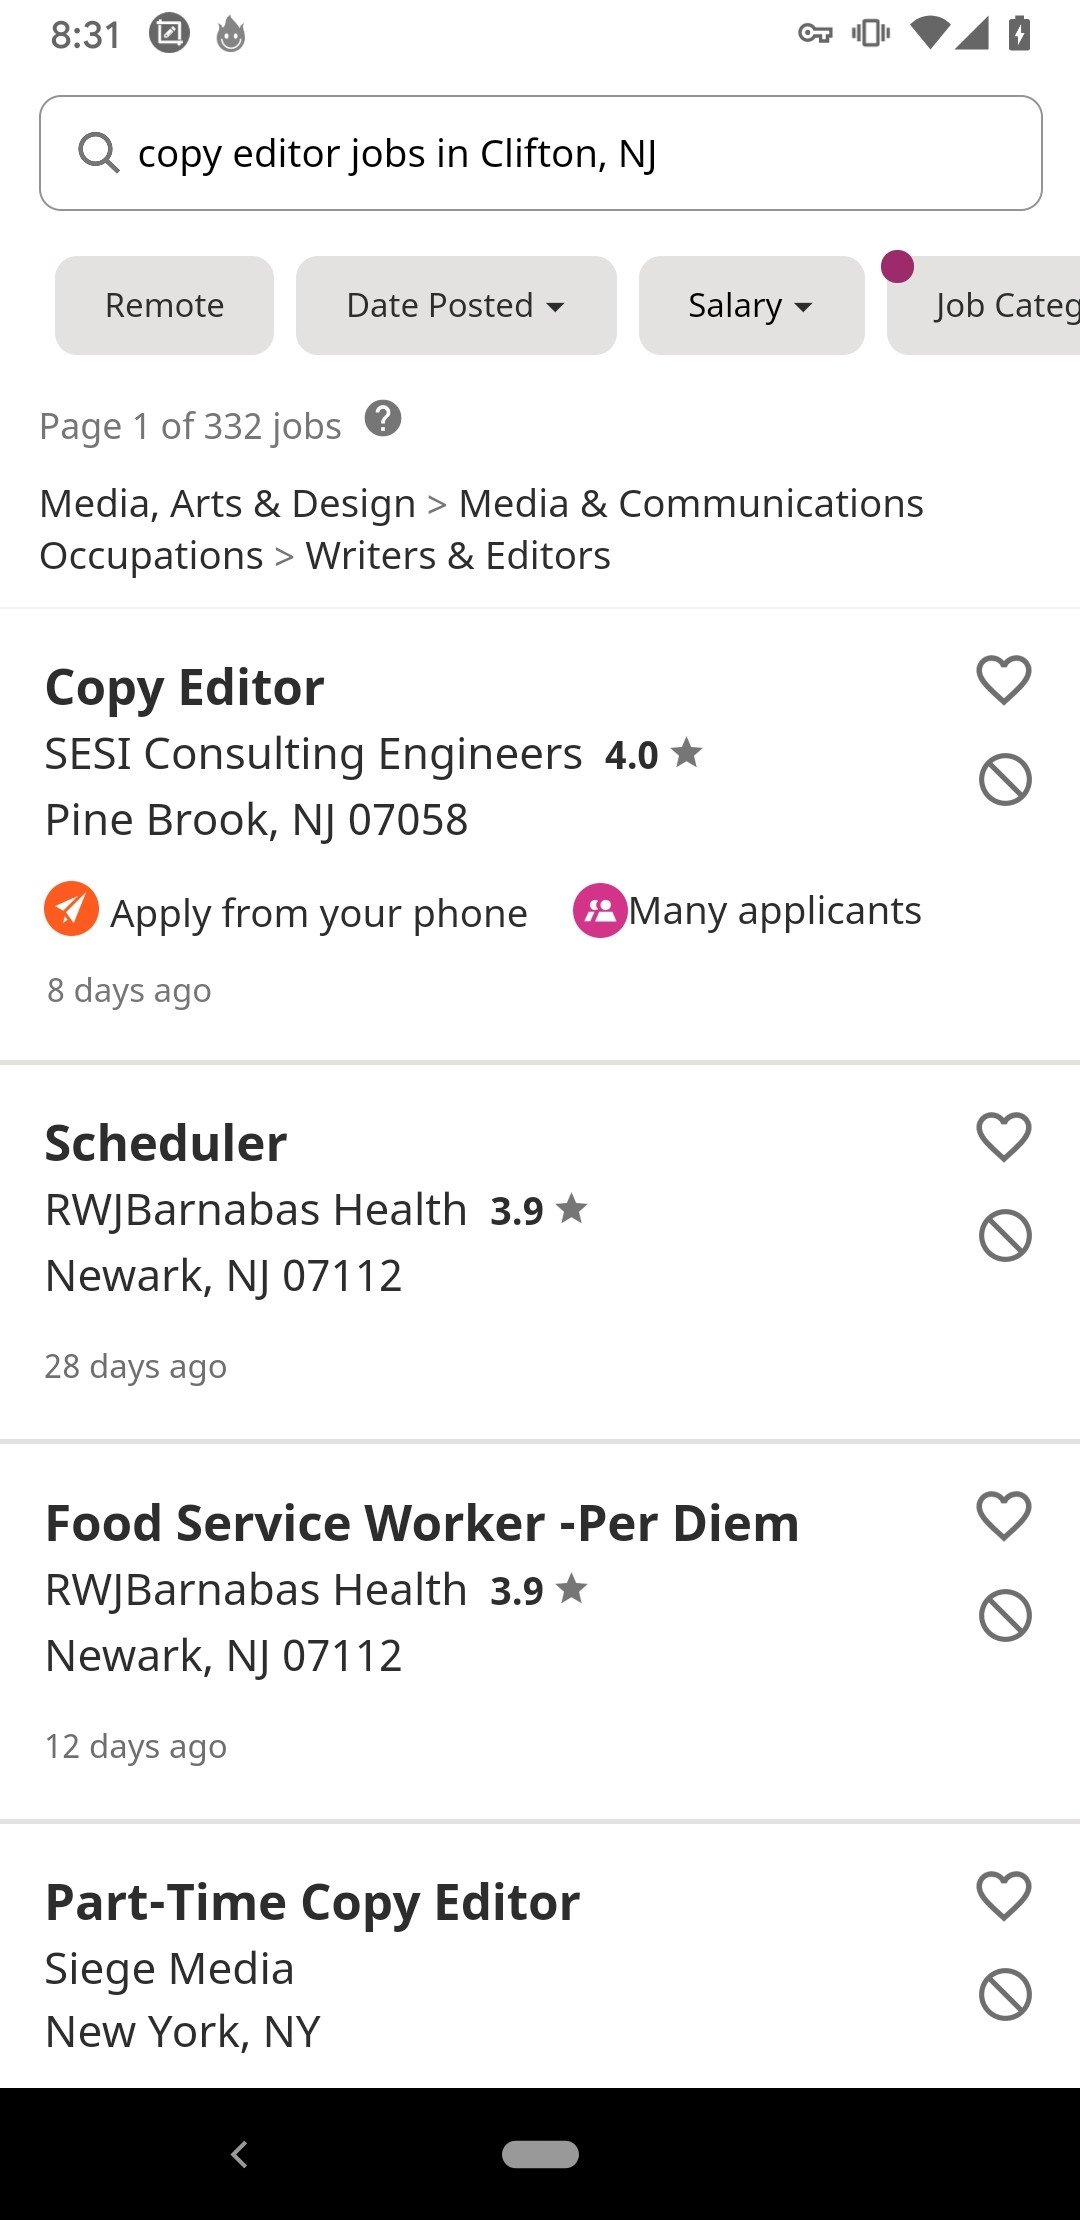 Emploi Android image 4